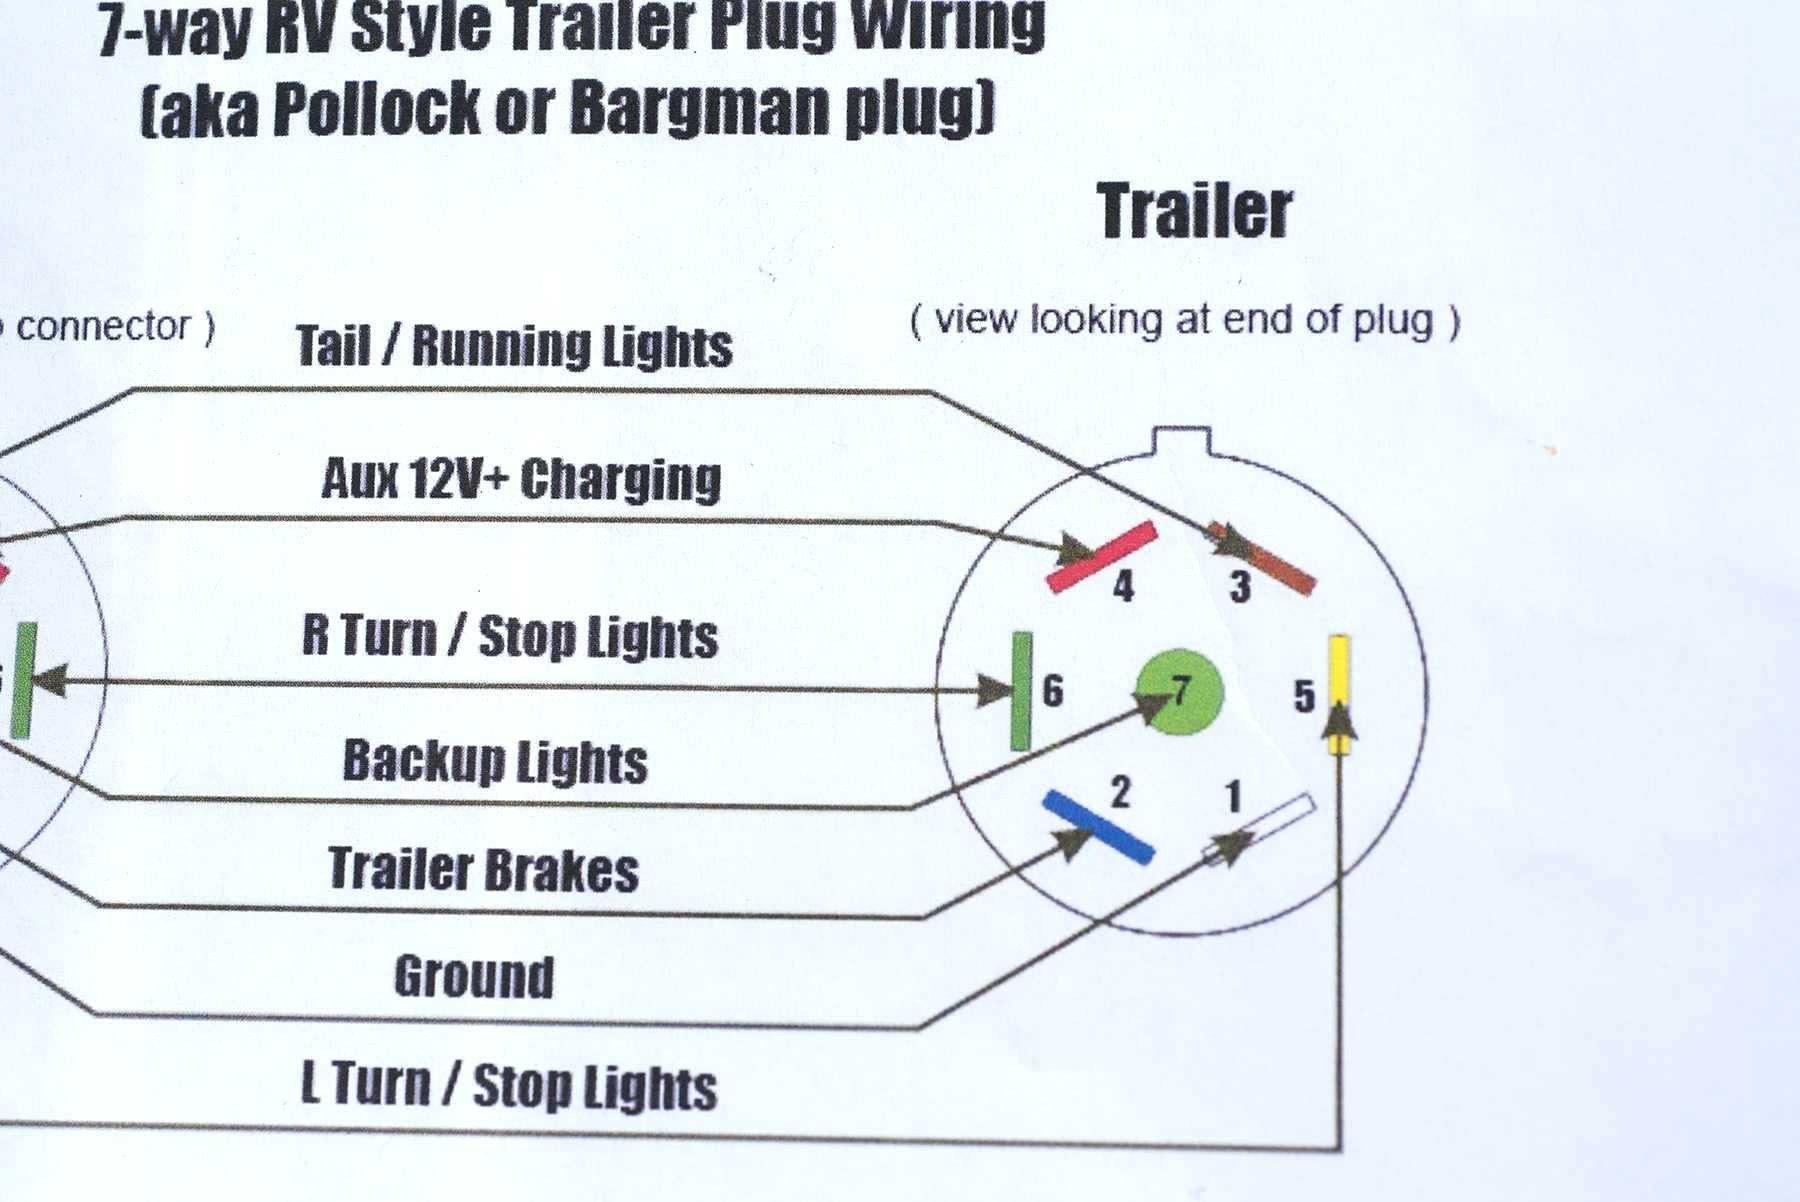 Chevy 7 Pin Wiring Diagram - Wiring Diagrams Click - Electric Trailer Wiring Diagram